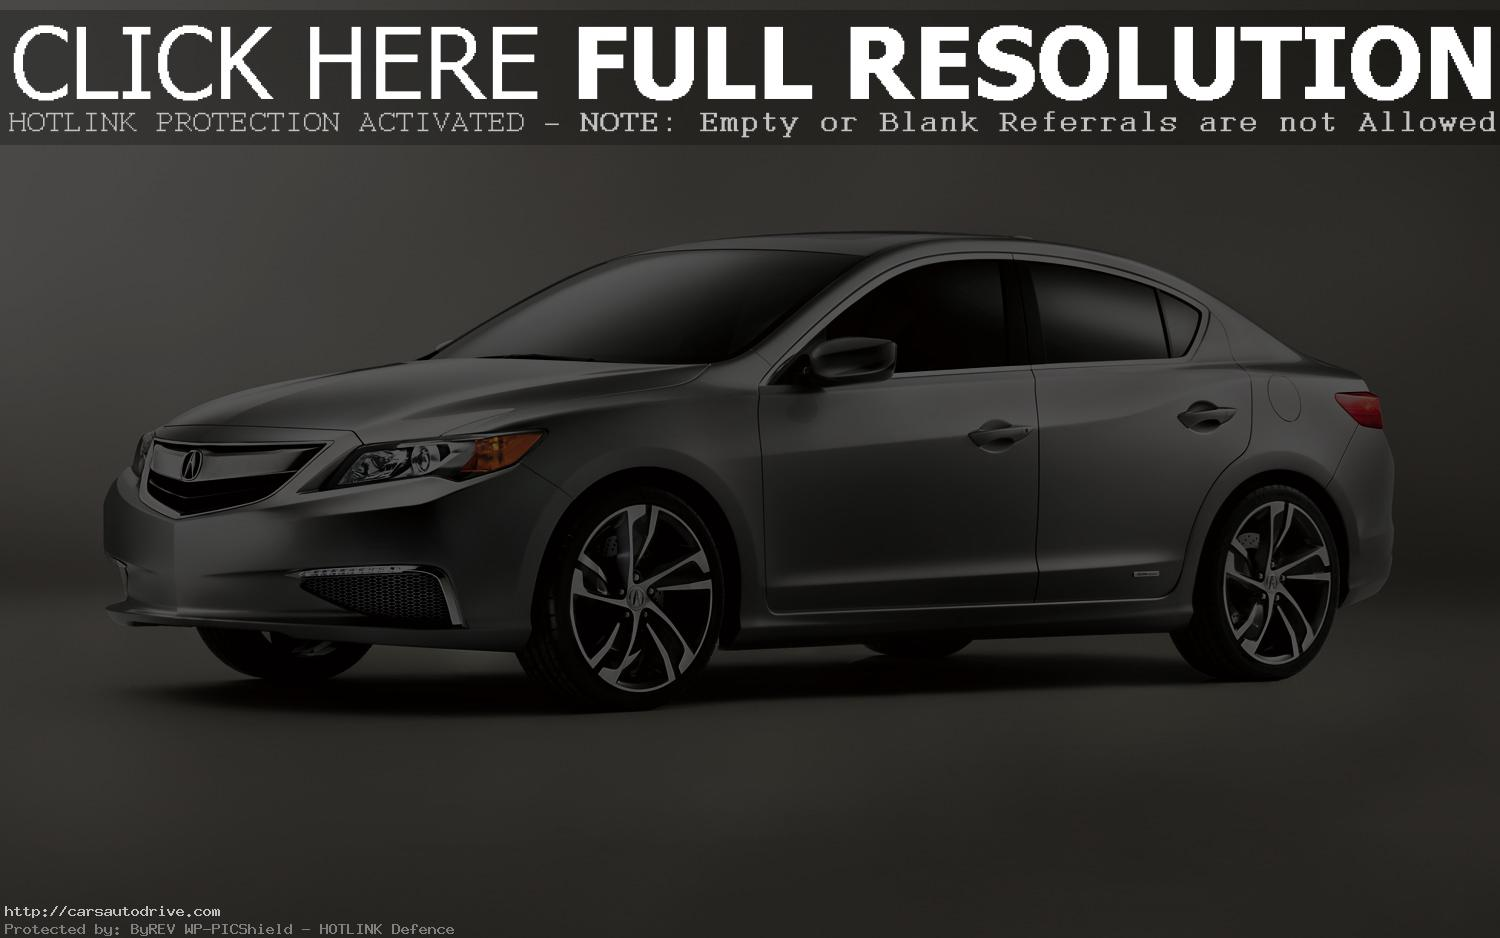 acura ilx images #9